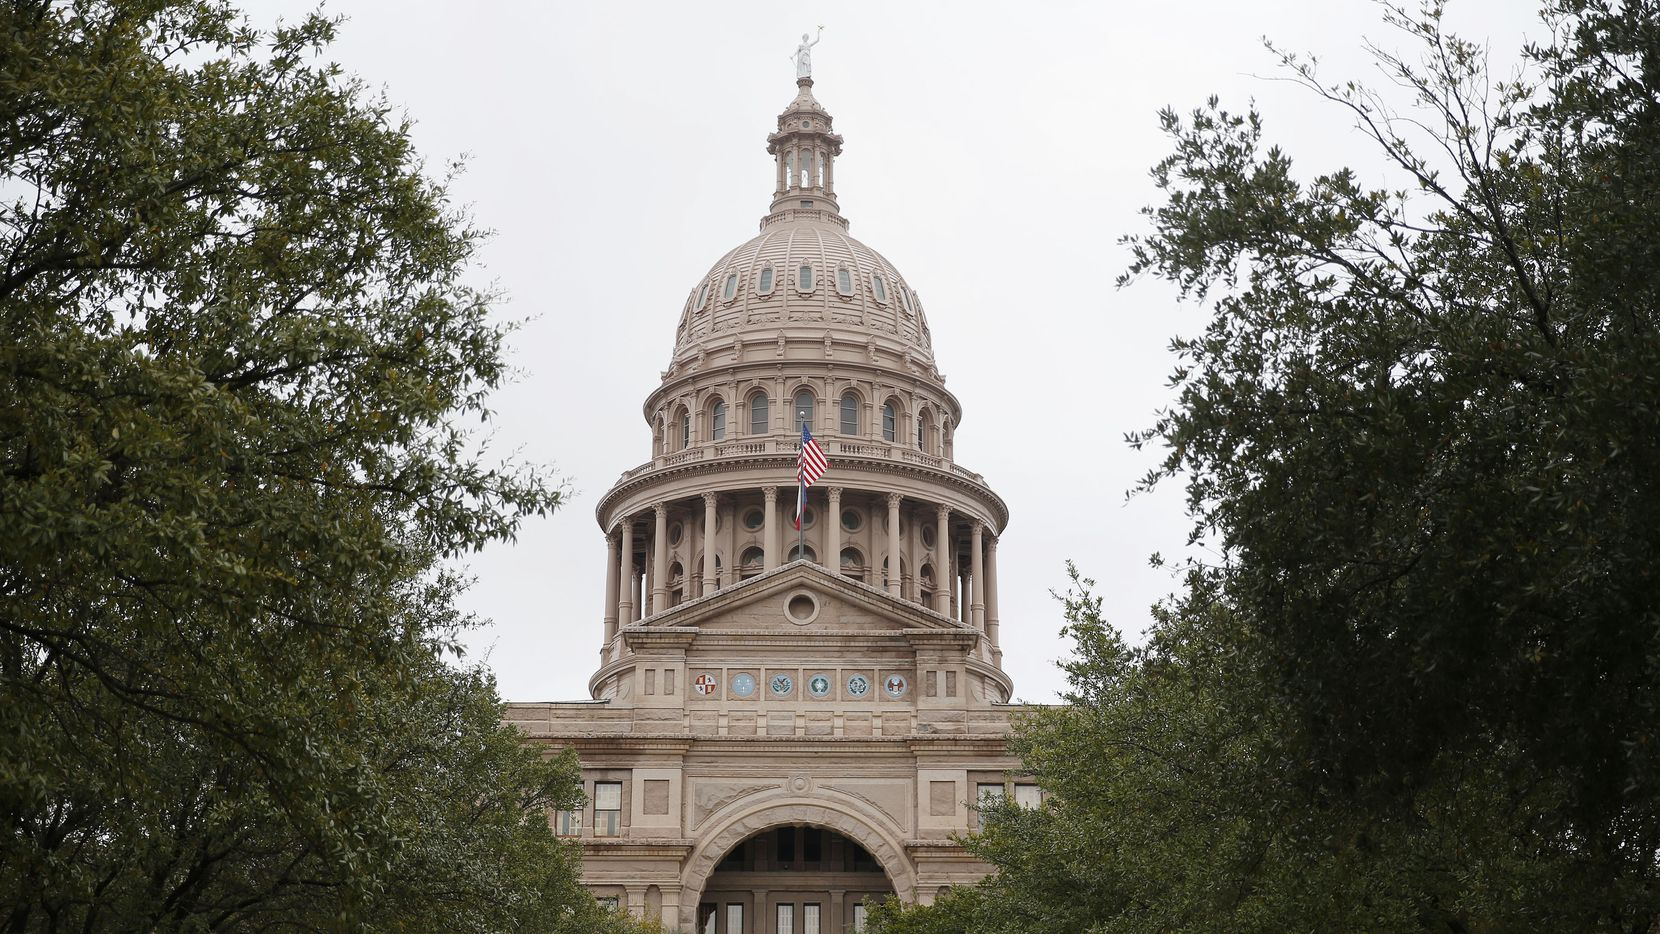 An exterior of the Texas State Capitol in Austin. State officials have cancelled public events and guided tours of the Capitol beginning Monday. (Andy Jacobsohn/The Dallas Morning News) 02082015xNEWS